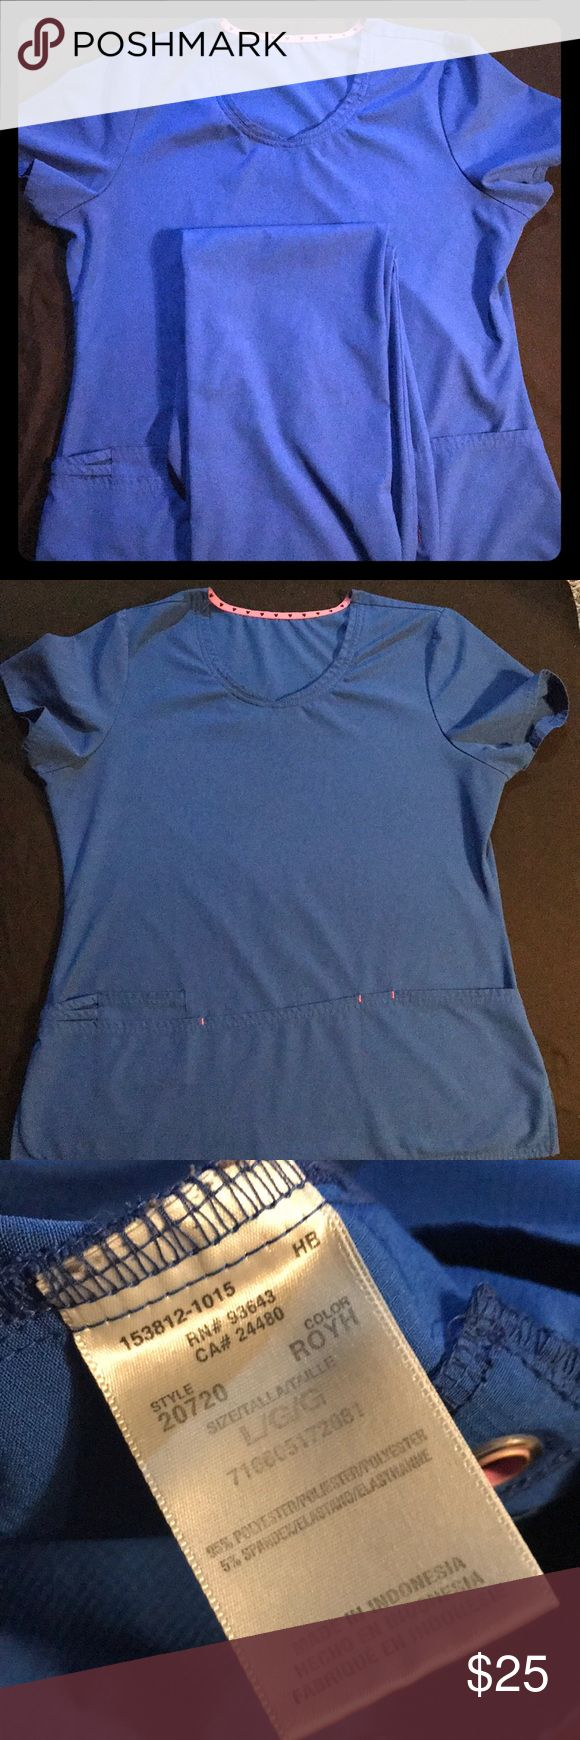 Royal Blue Scrub Set Royal Blue Heart and Soul scrubs set. medium drawstring bottoms with a large top. Small snag on the front right of pants, shown in picture. Very comfortable, breathable fabric. Heart and Soul Other